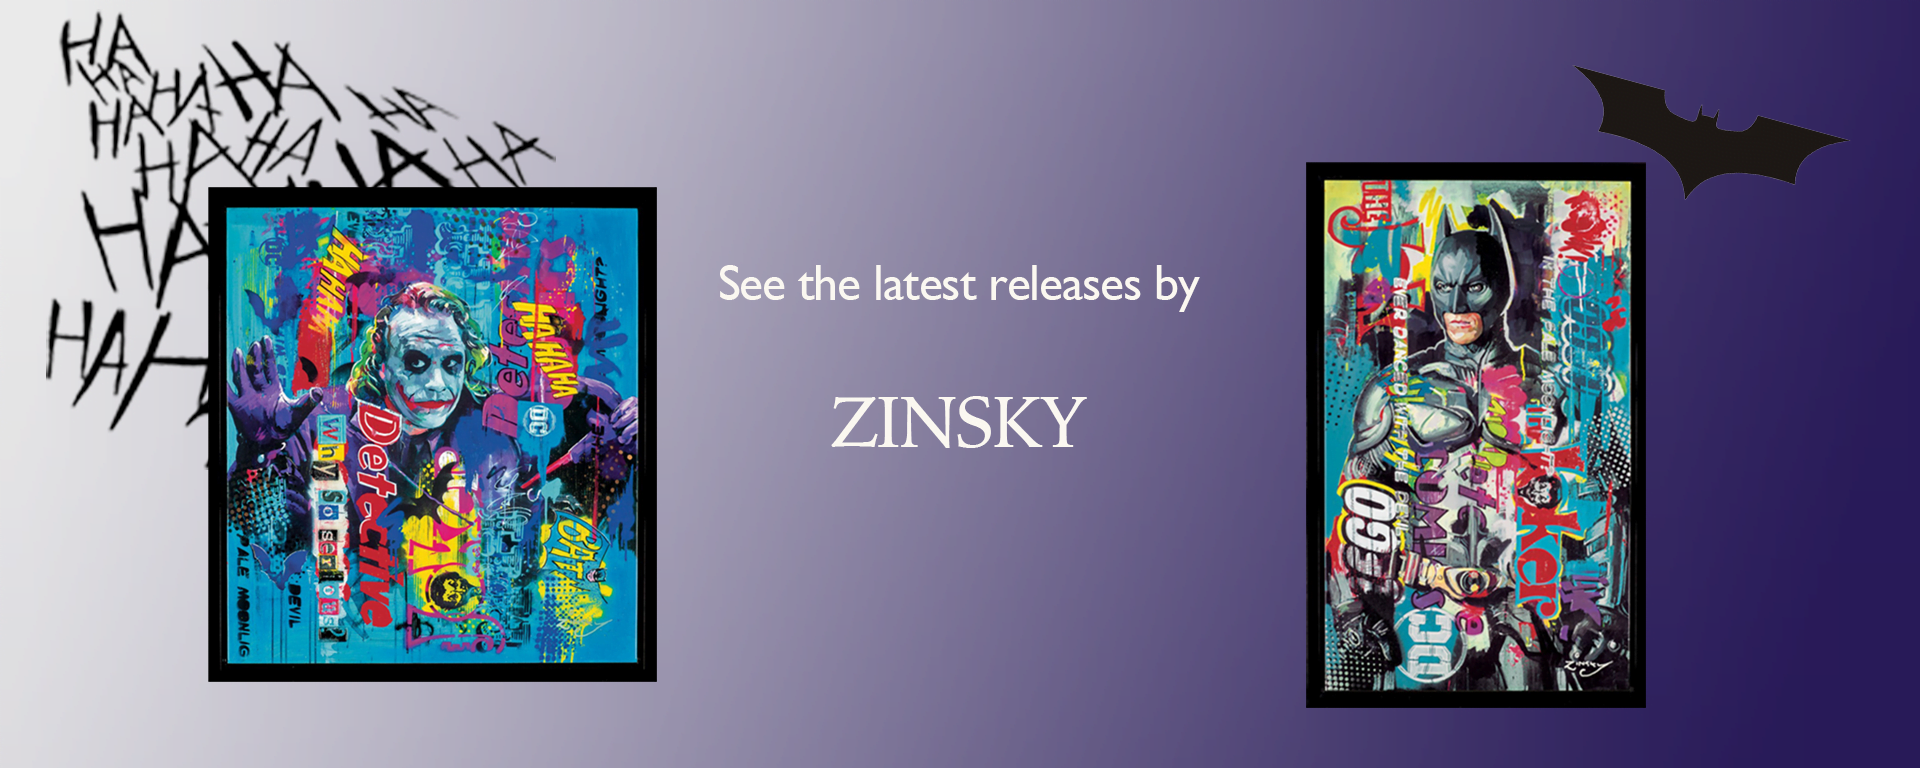 A New and Exciting Release from Zinsky!